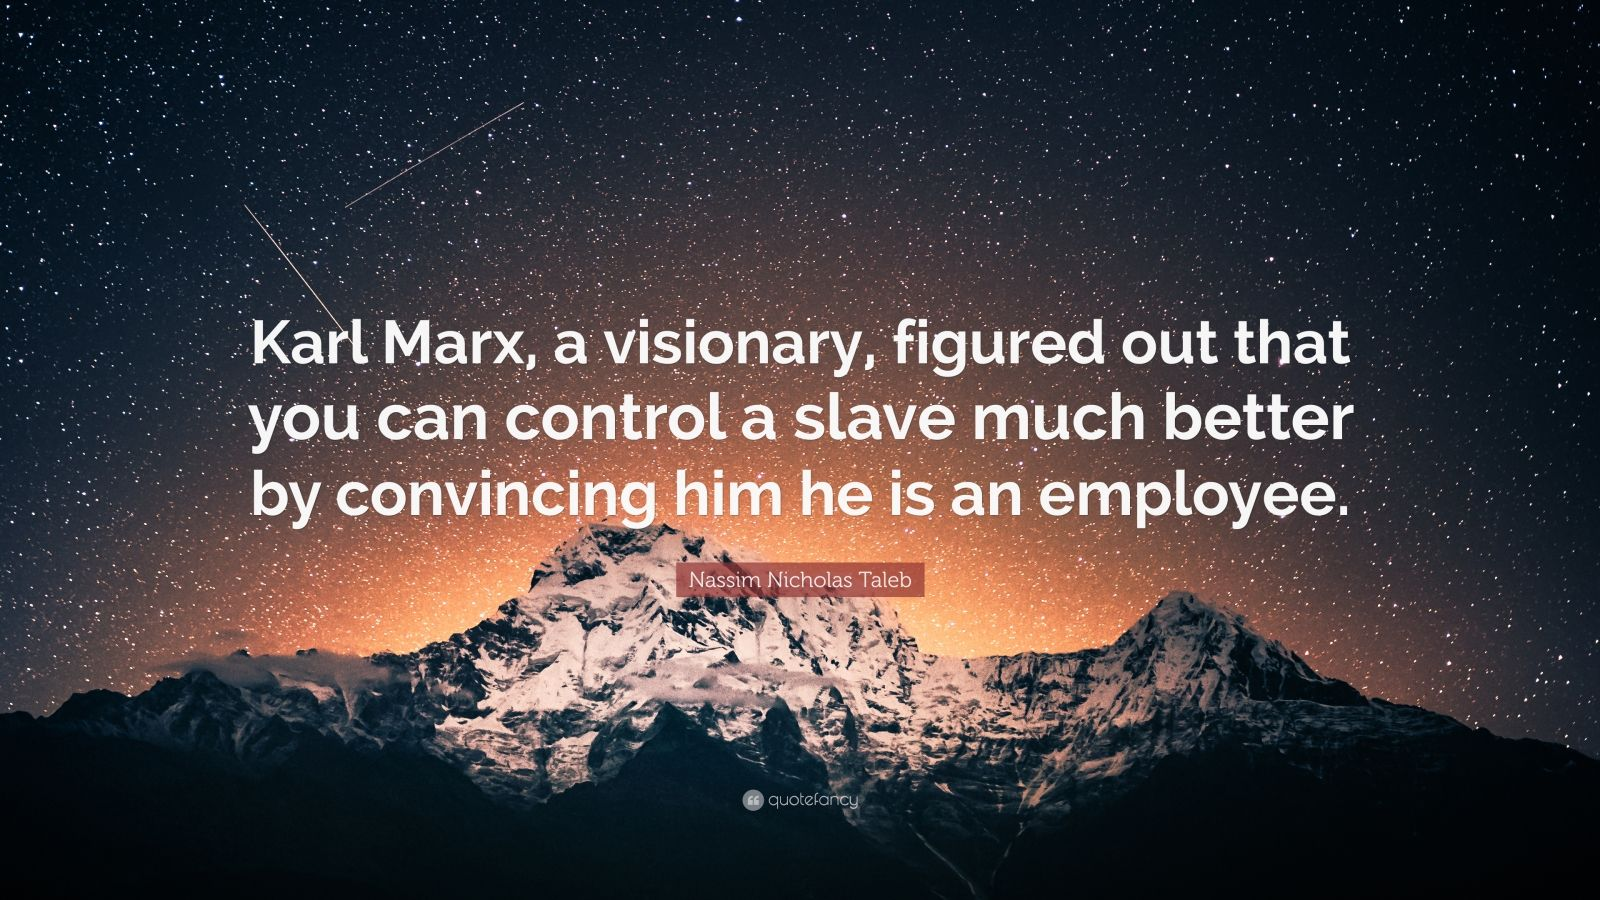 """Nassim Nicholas Taleb Quote: """"Karl Marx, a visionary, figured out that you can control a slave much better by convincing him he is an employee."""""""